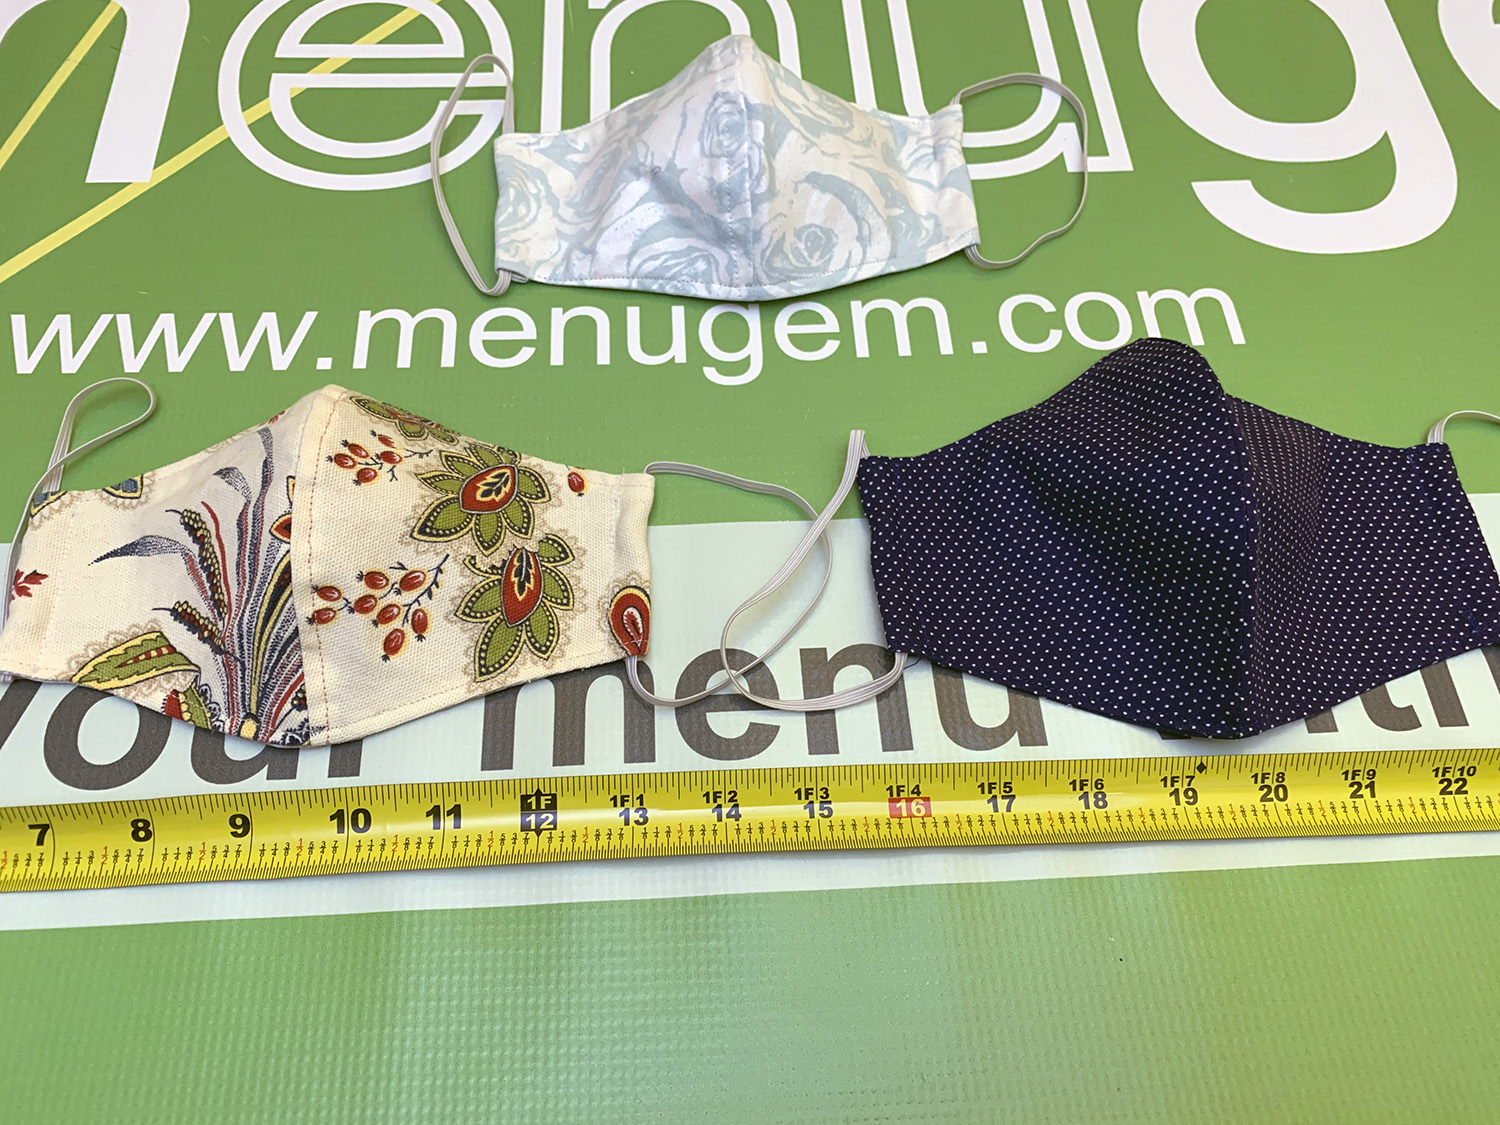 MenuGem Standard Mask 3 Pack - 2 Floral 1 Blue White Dots